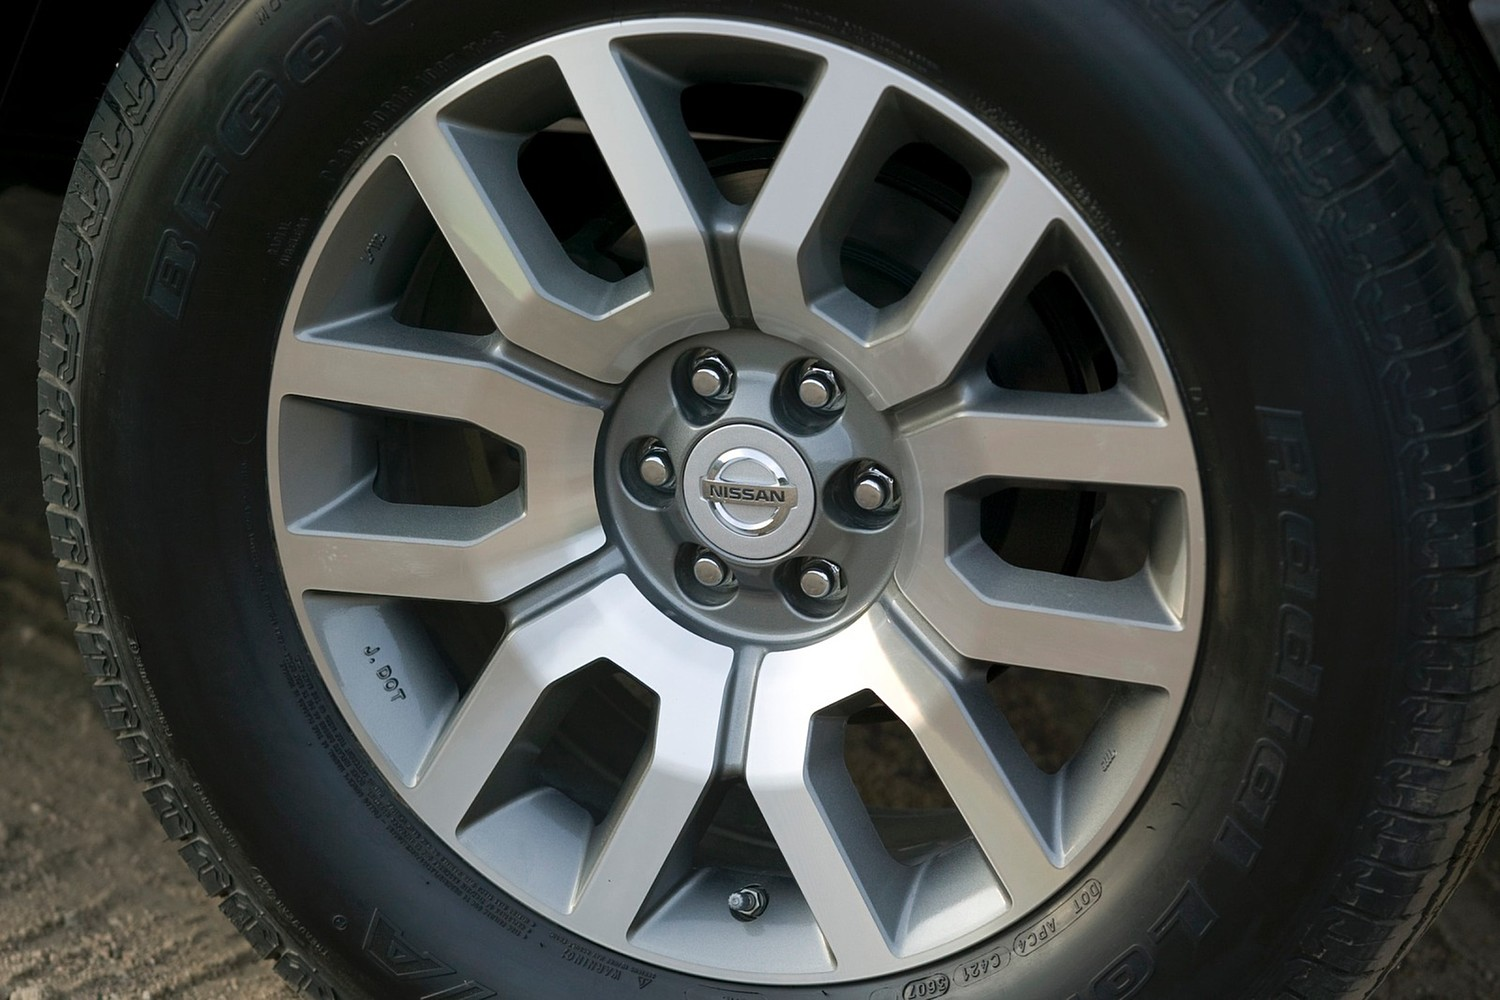 Nissan Frontier SL Crew Cab Pickup Wheel (2013 model year shown)